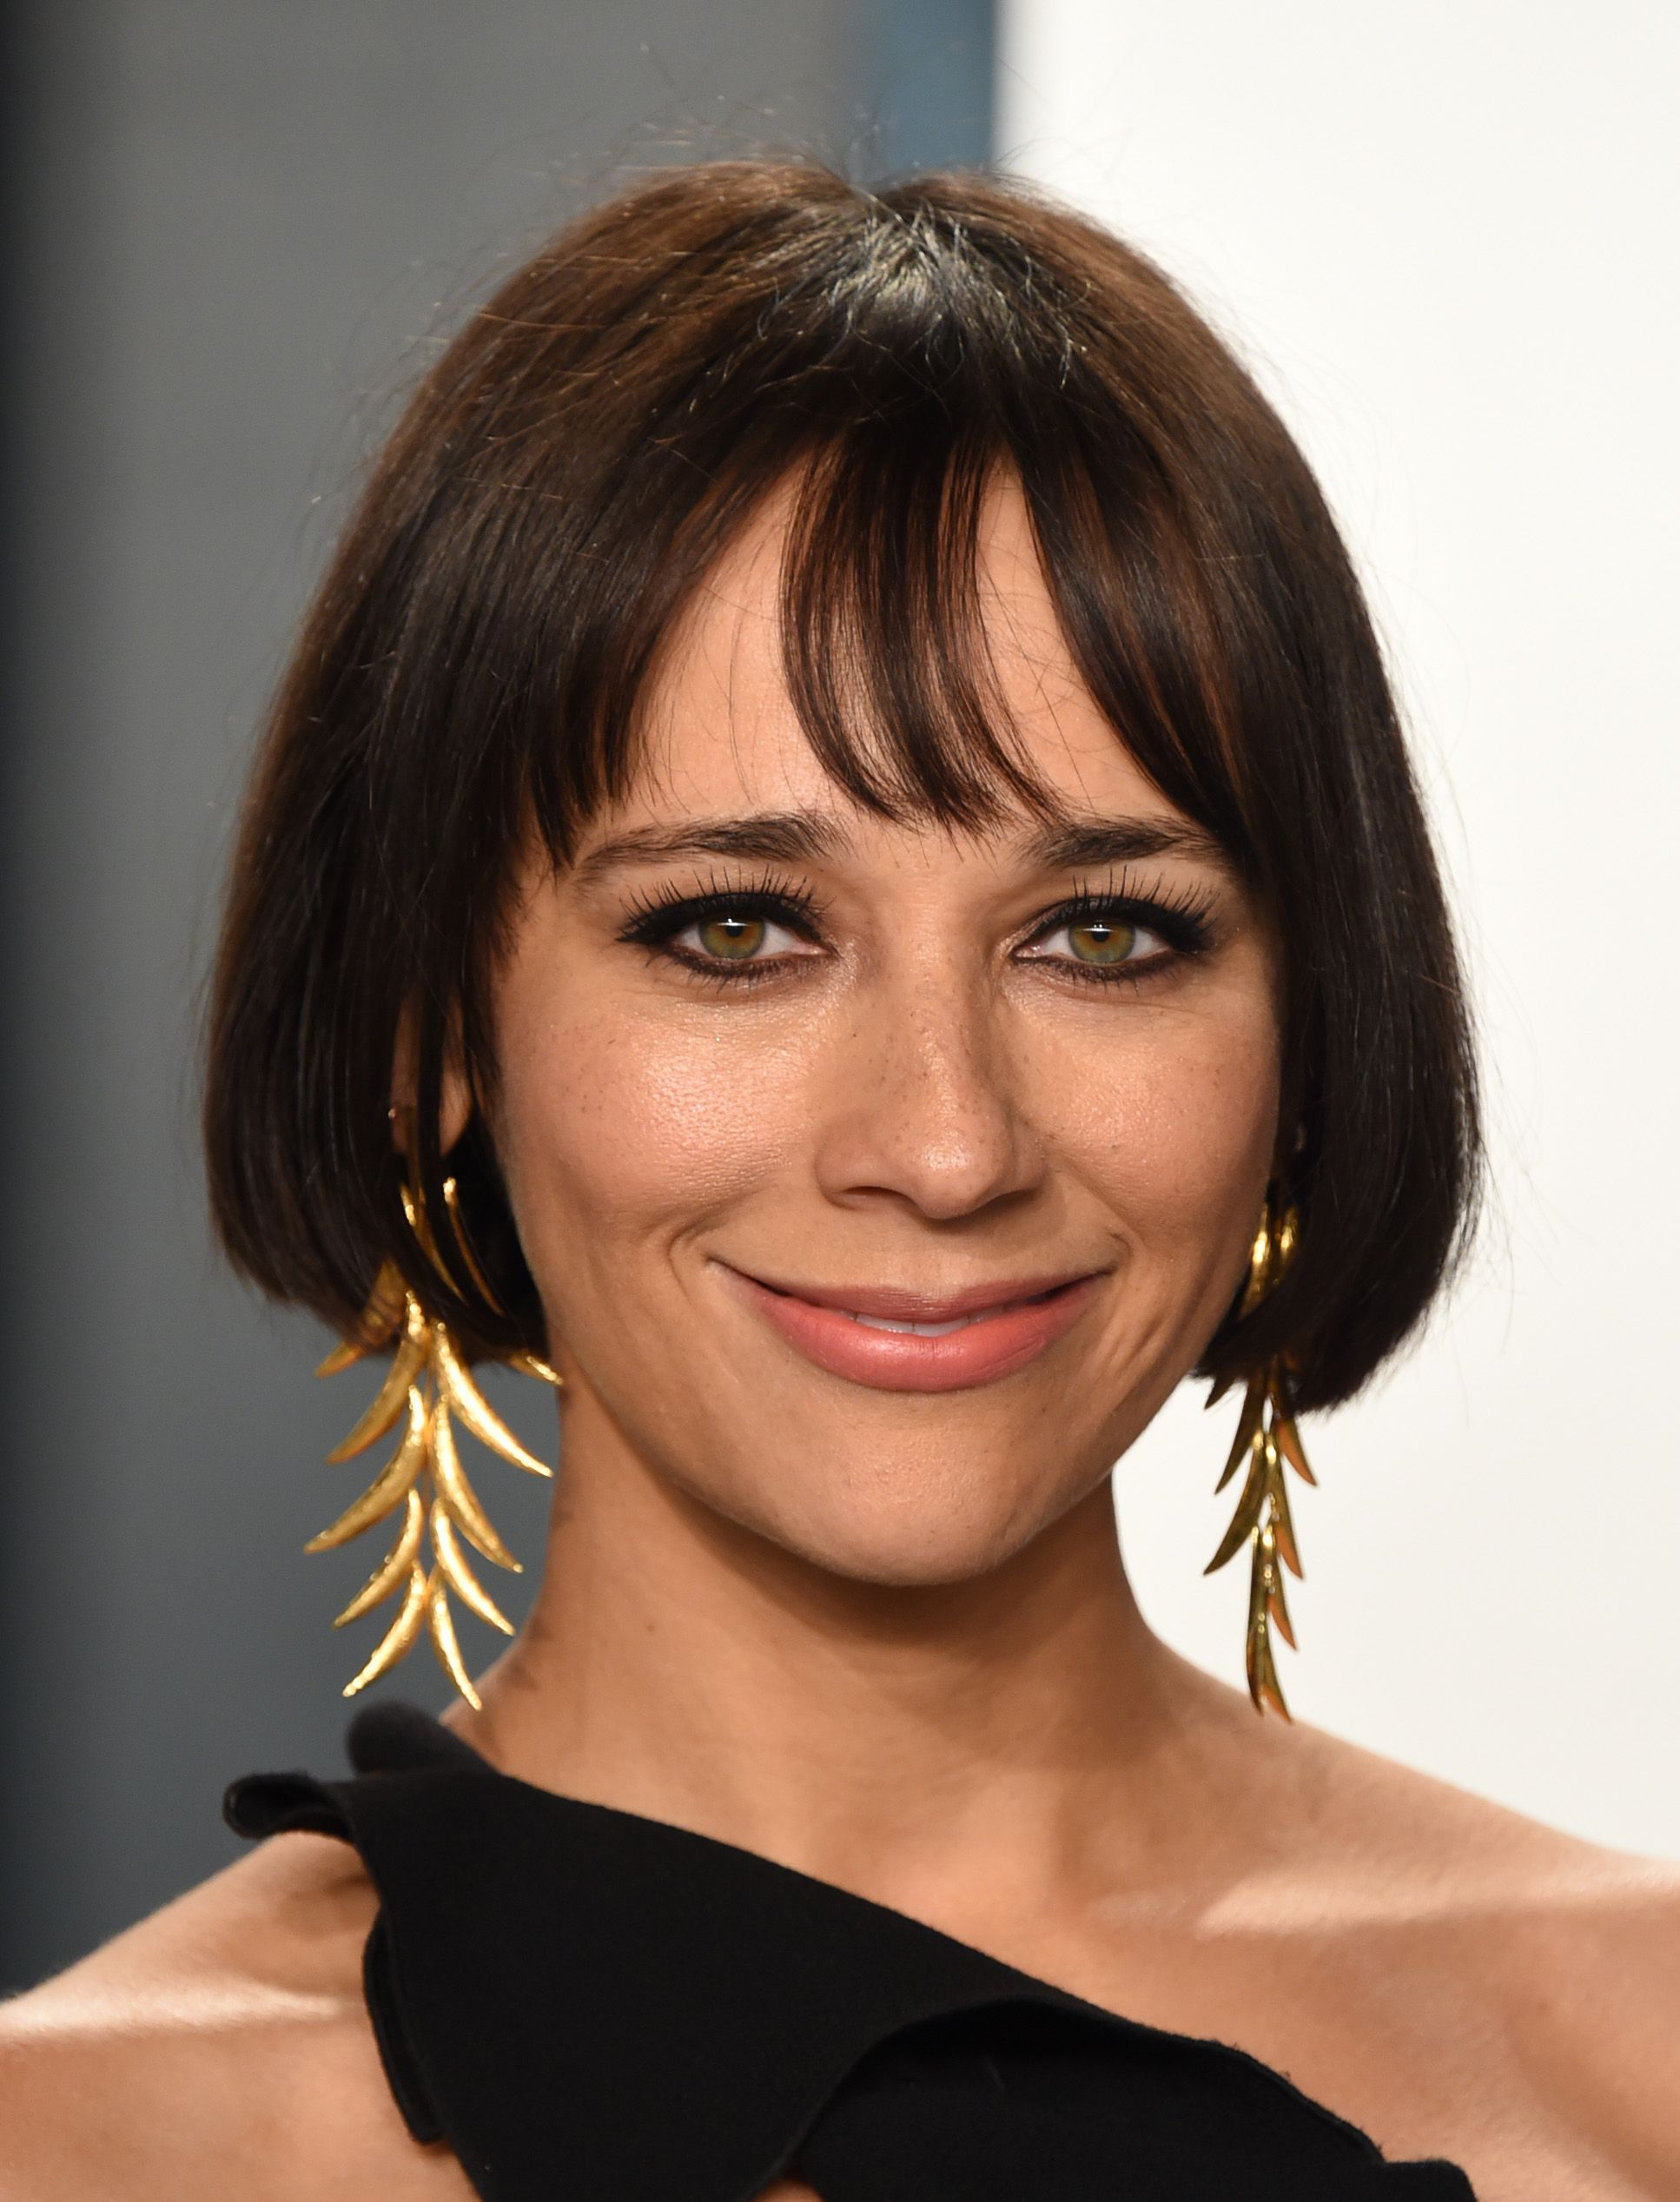 Women New Summer Haircuts Latest Hairstyles With Bangs 2020 Images To Download 22